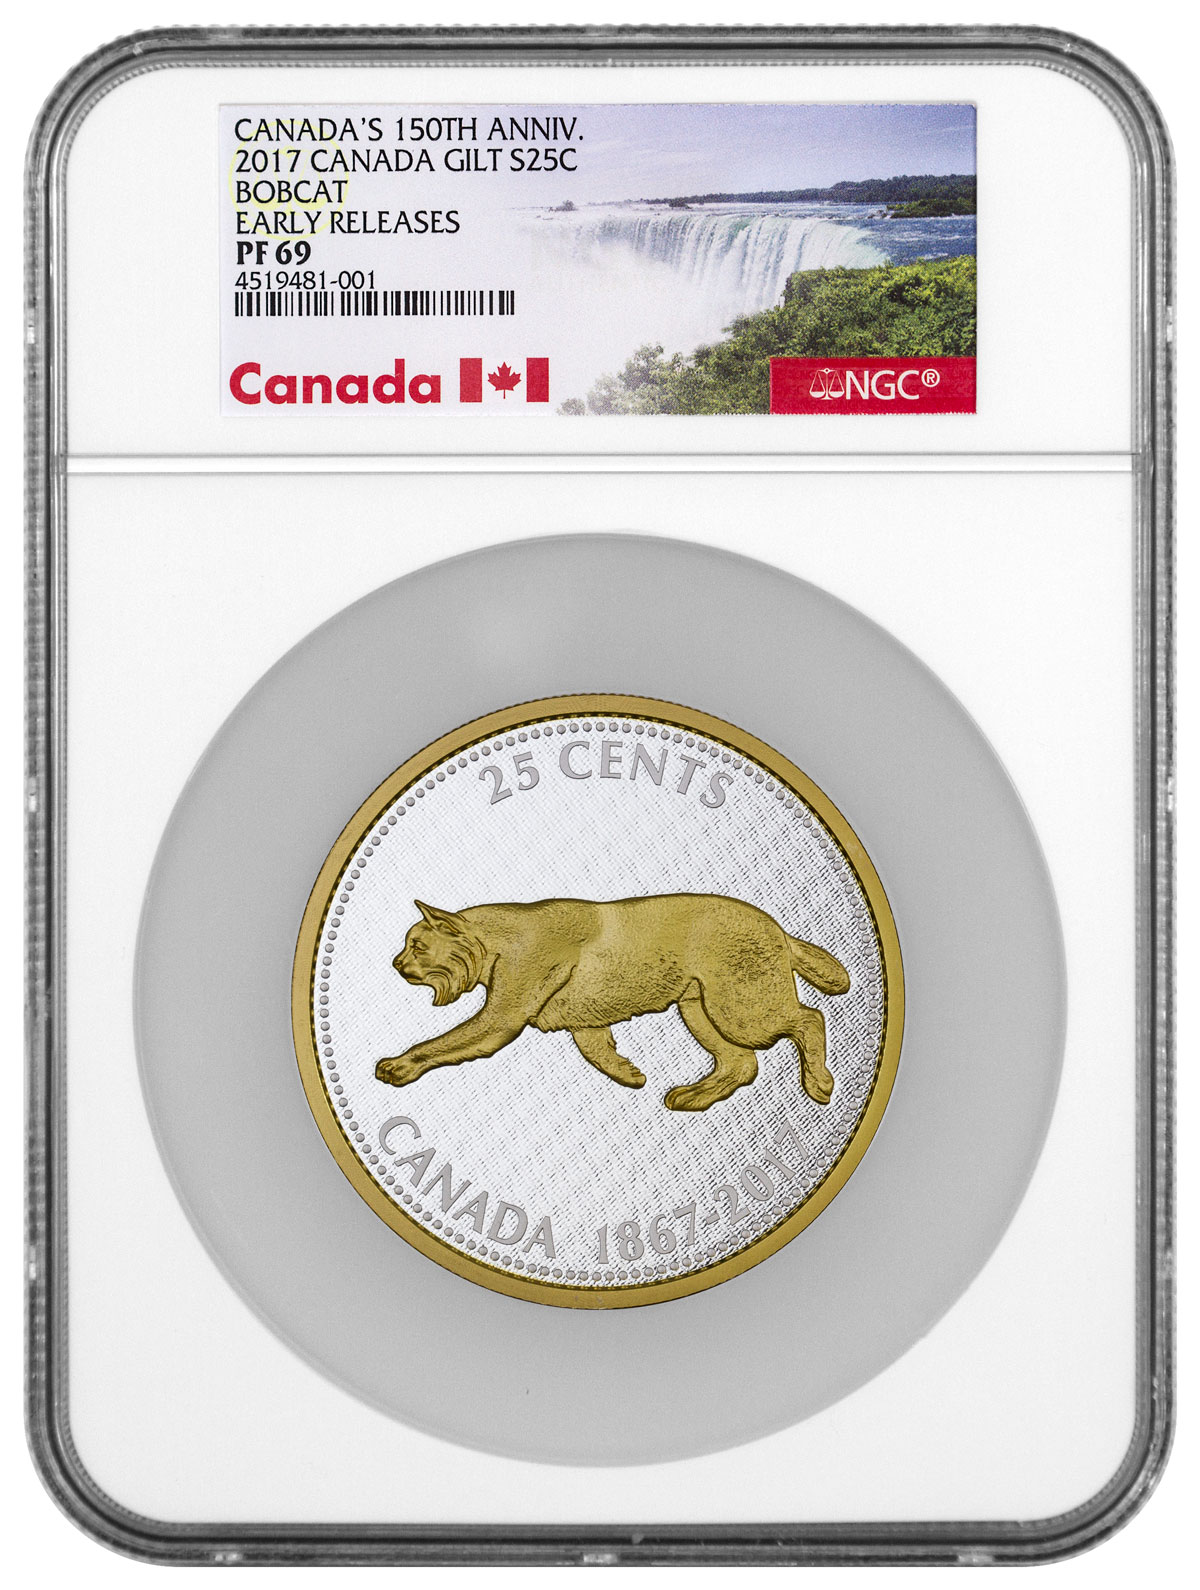 2017 Canada Big Coin Series - Bobcat 5 oz Silver Gilt Proof 25c Coin NGC PF69 ER (Exclusive Canada Label)